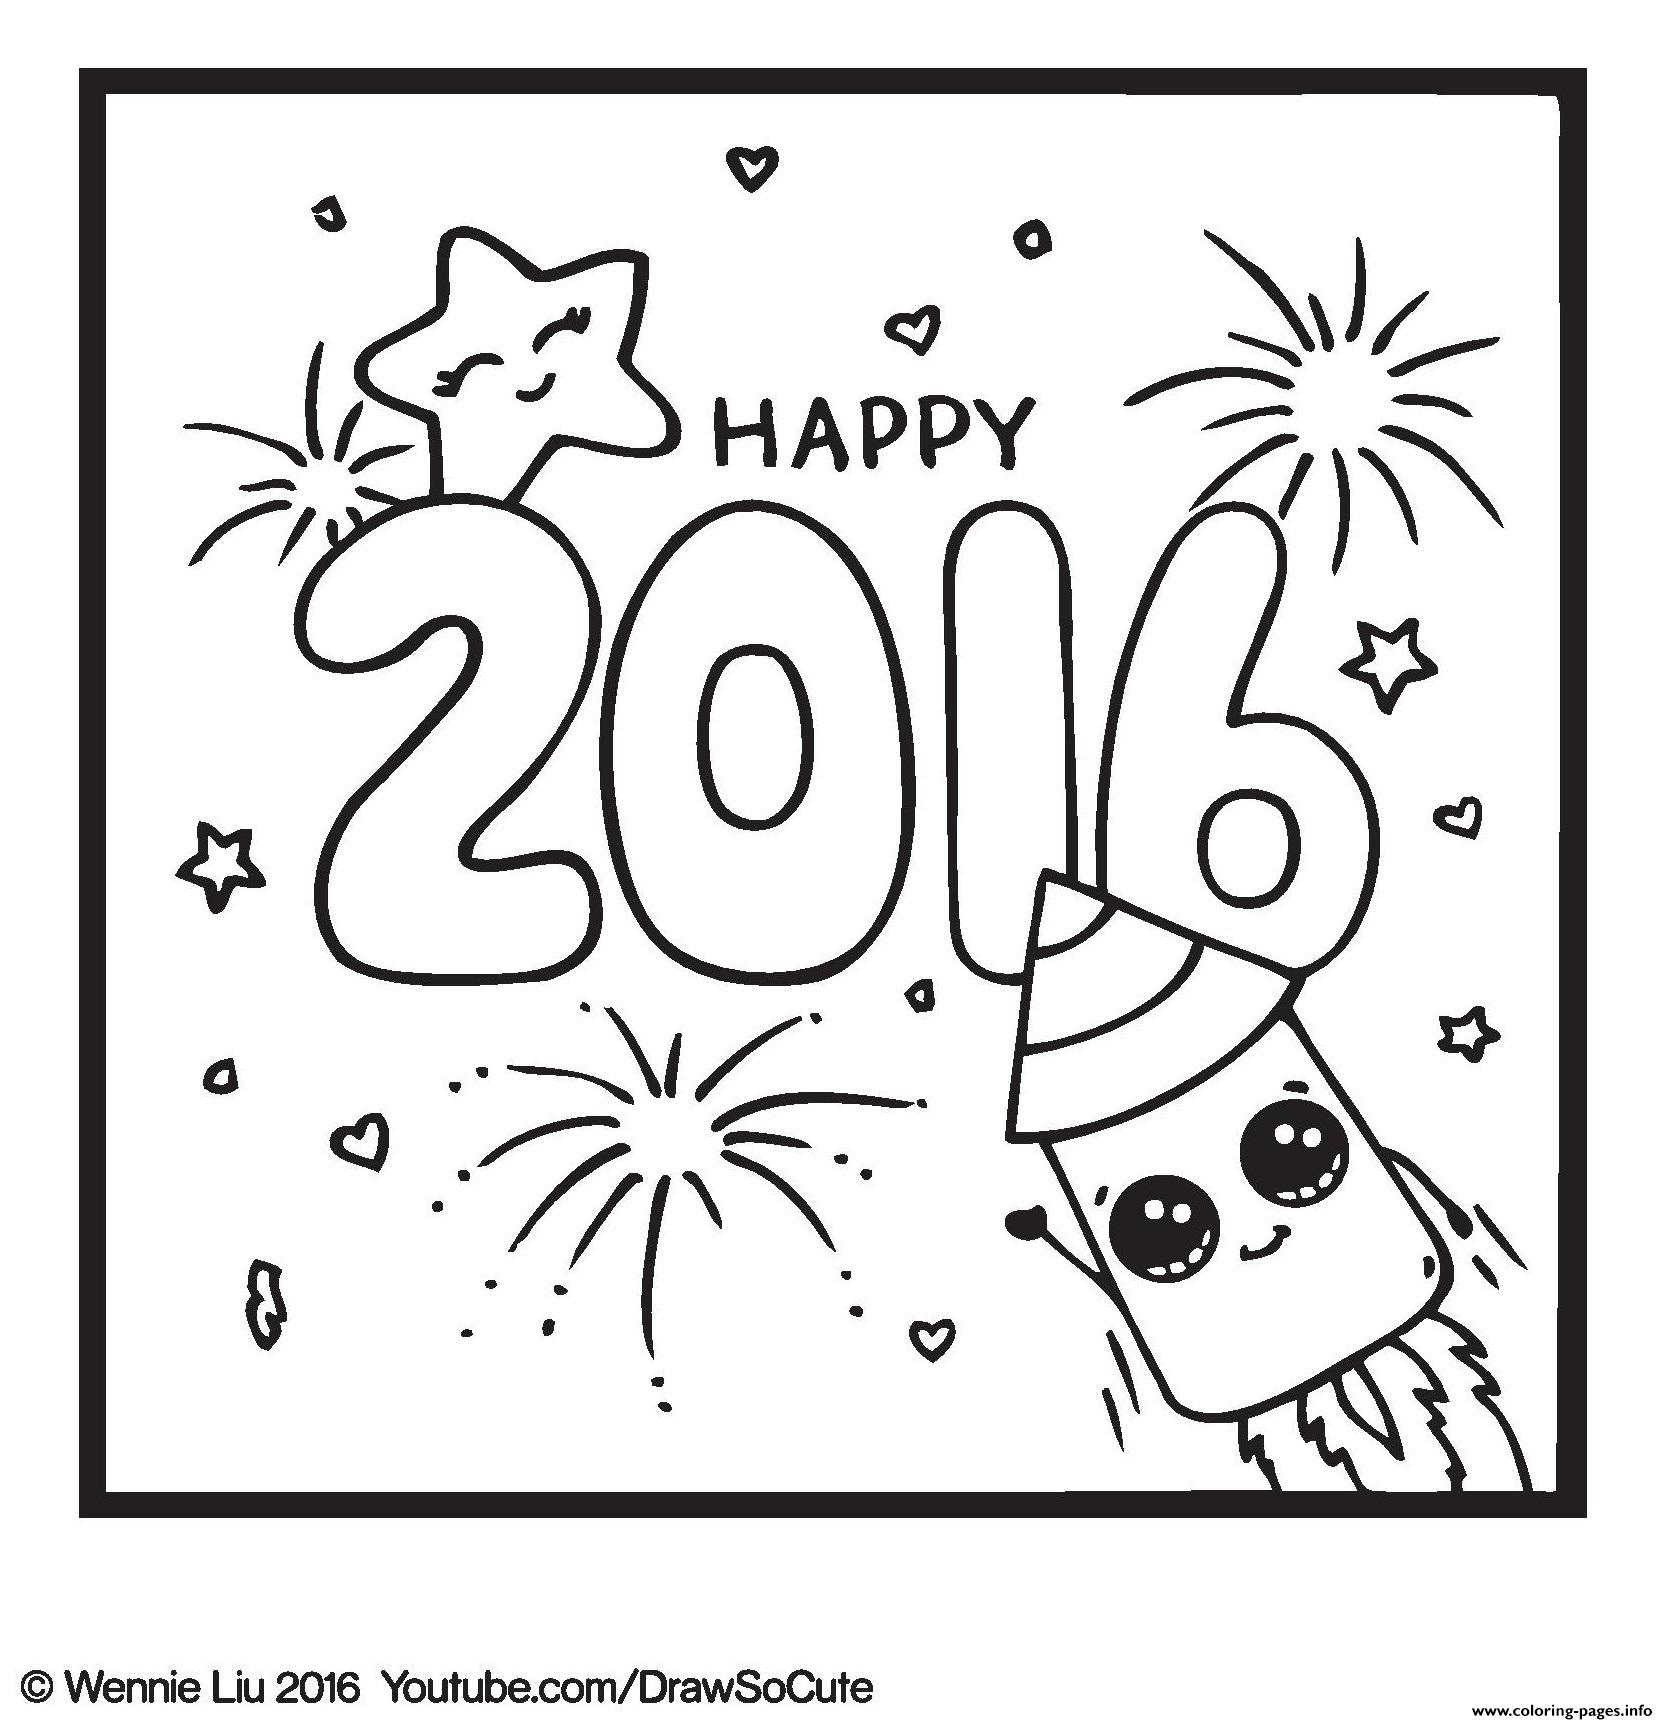 Happy new year draw so cute coloring pages printable for Draw so cute coloring pages